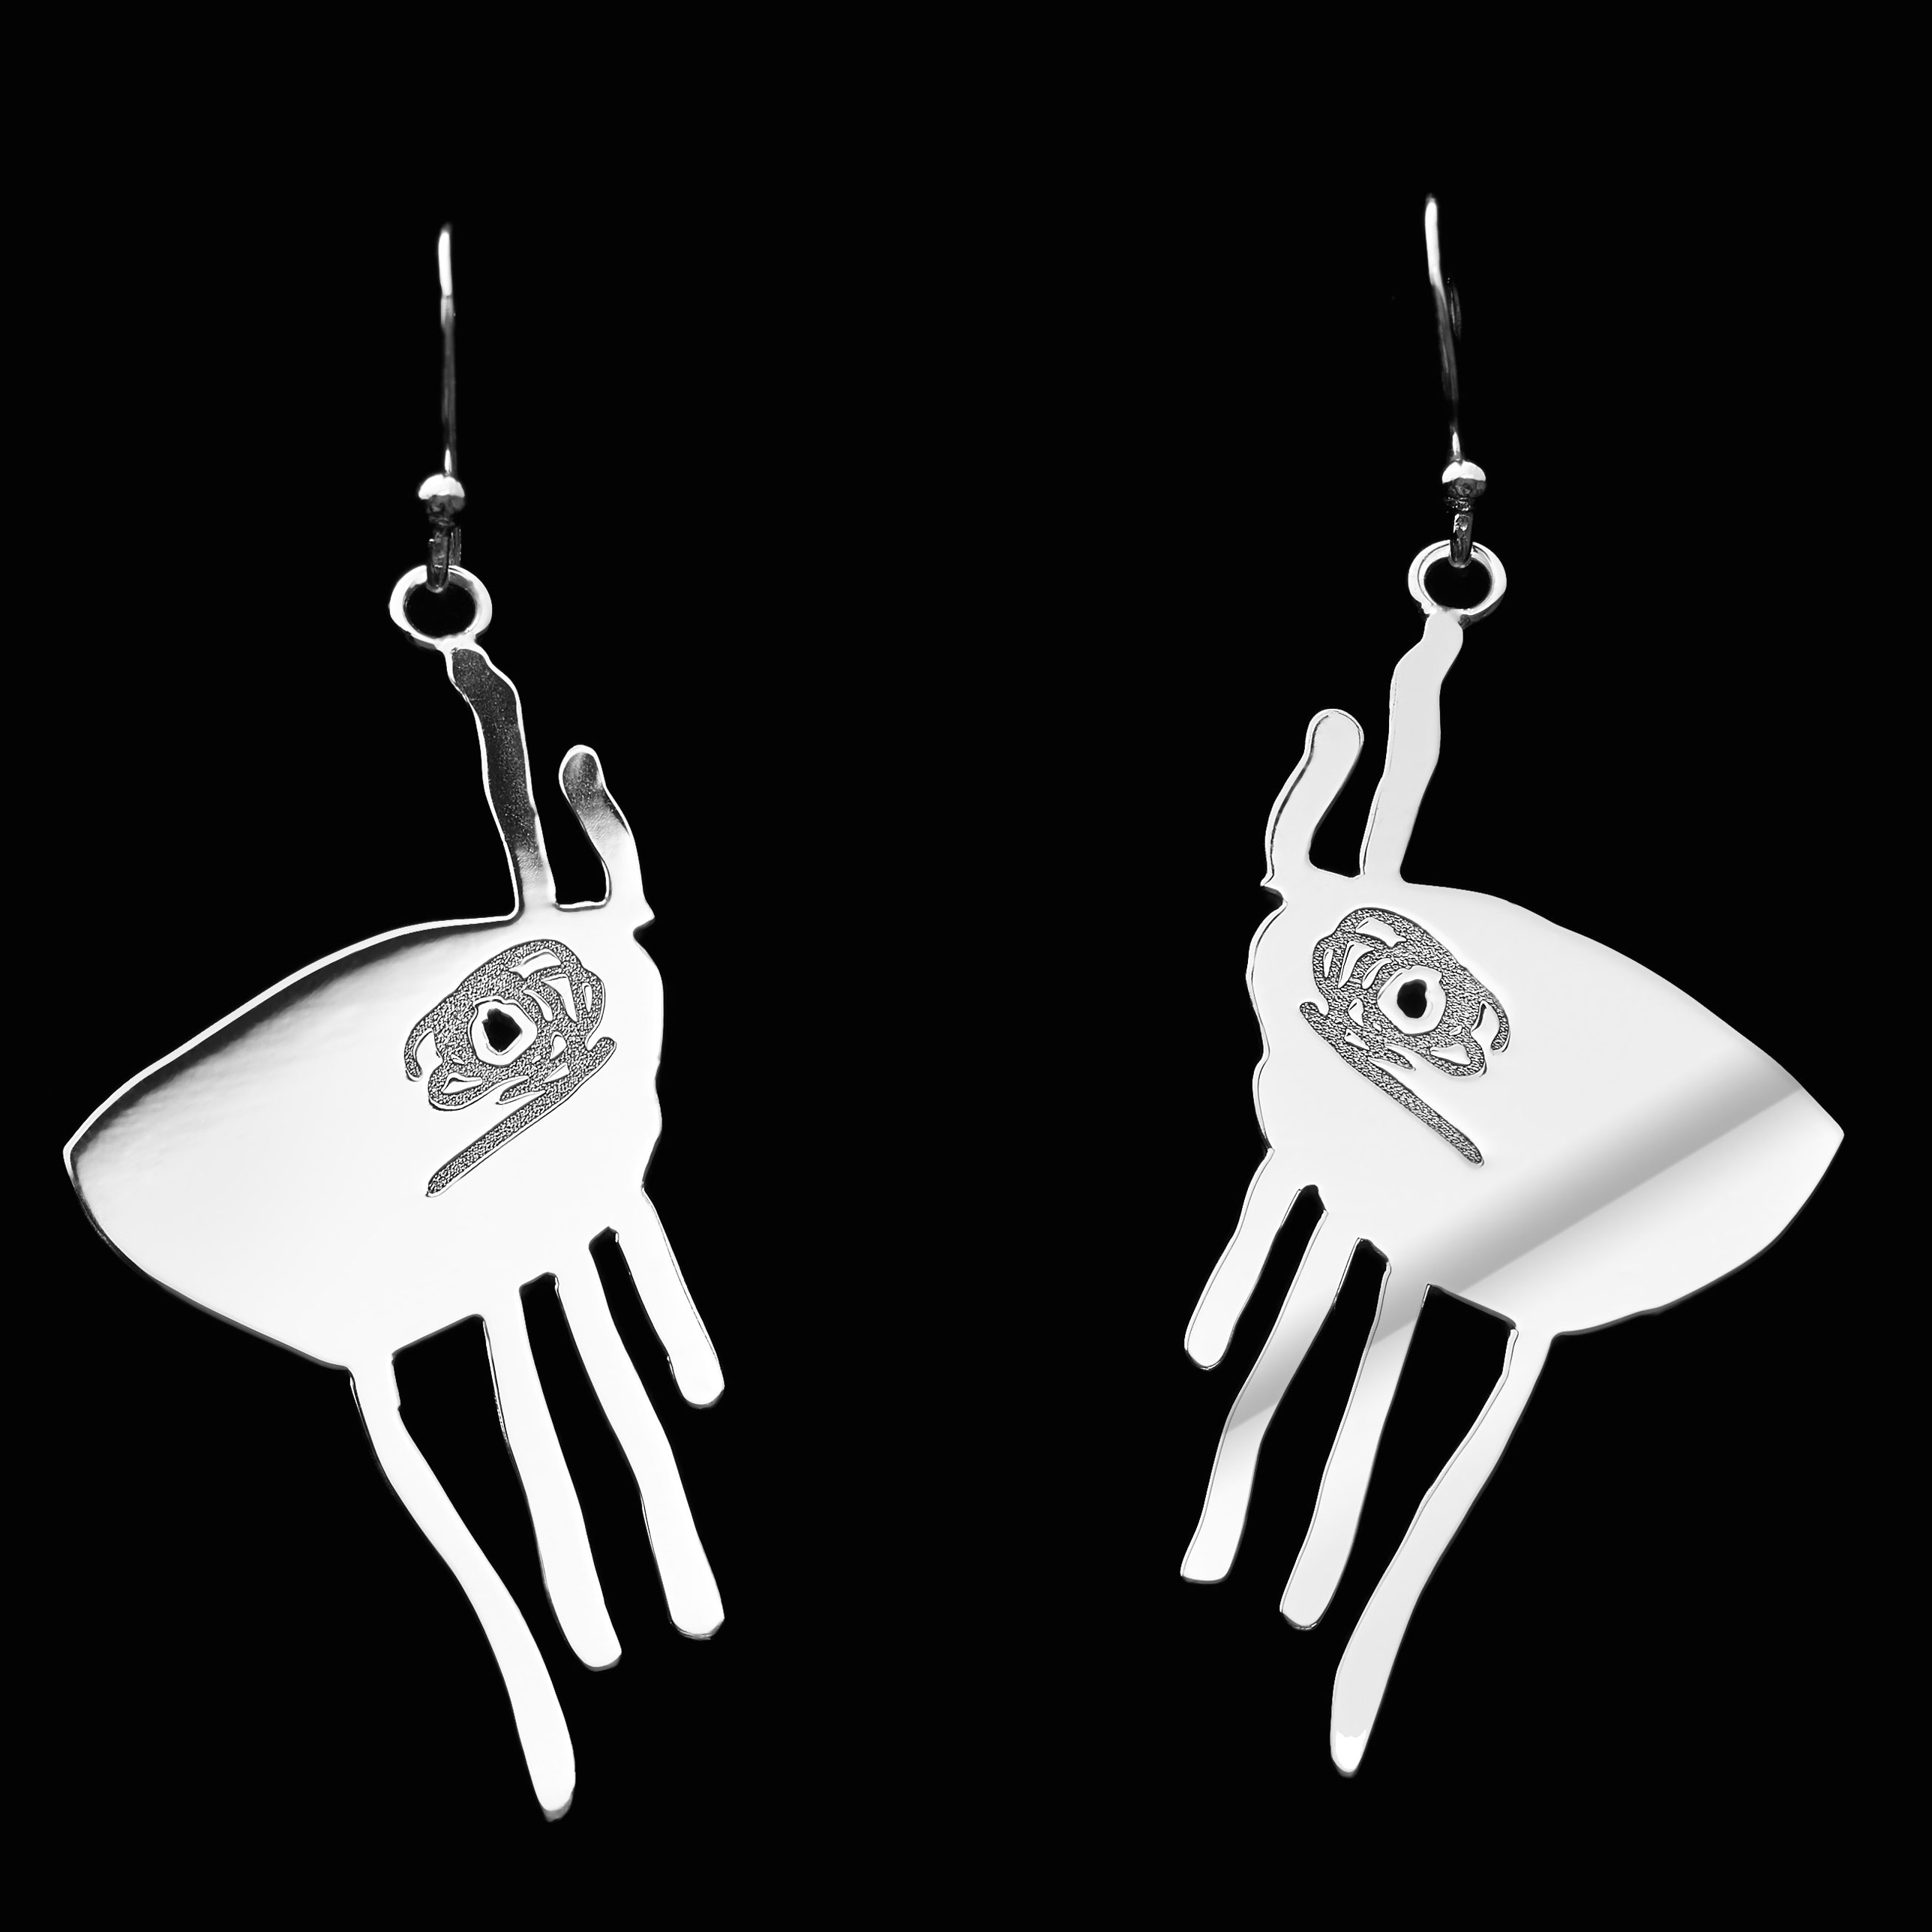 küpe / earrings